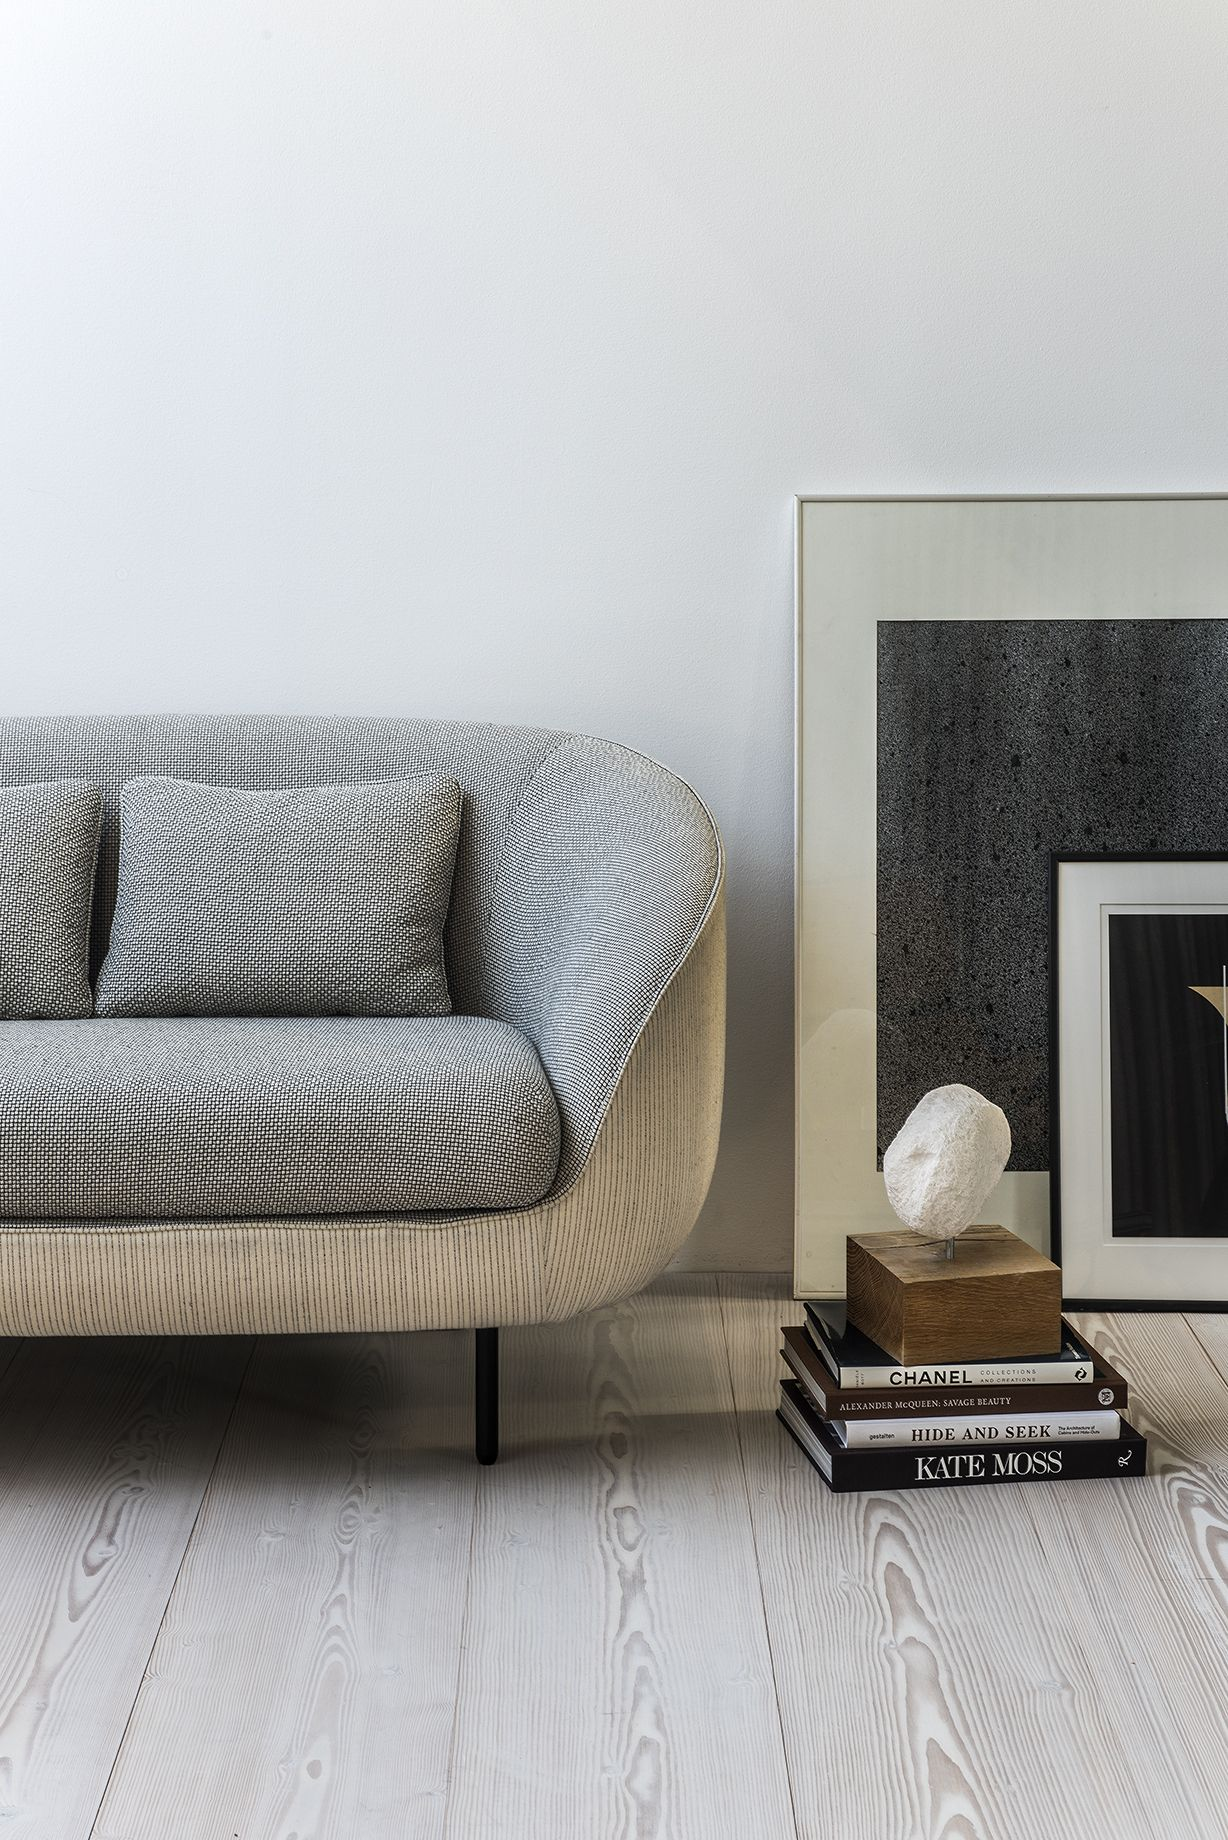 gorgeous living room with alternative side table. Fredericia sofa Haiku Low by GamFratesi. Haiku is an eye-catching and inviting design statement for hotel lobbies, executive offices and private homes. The modern contemporary design partners well with bot